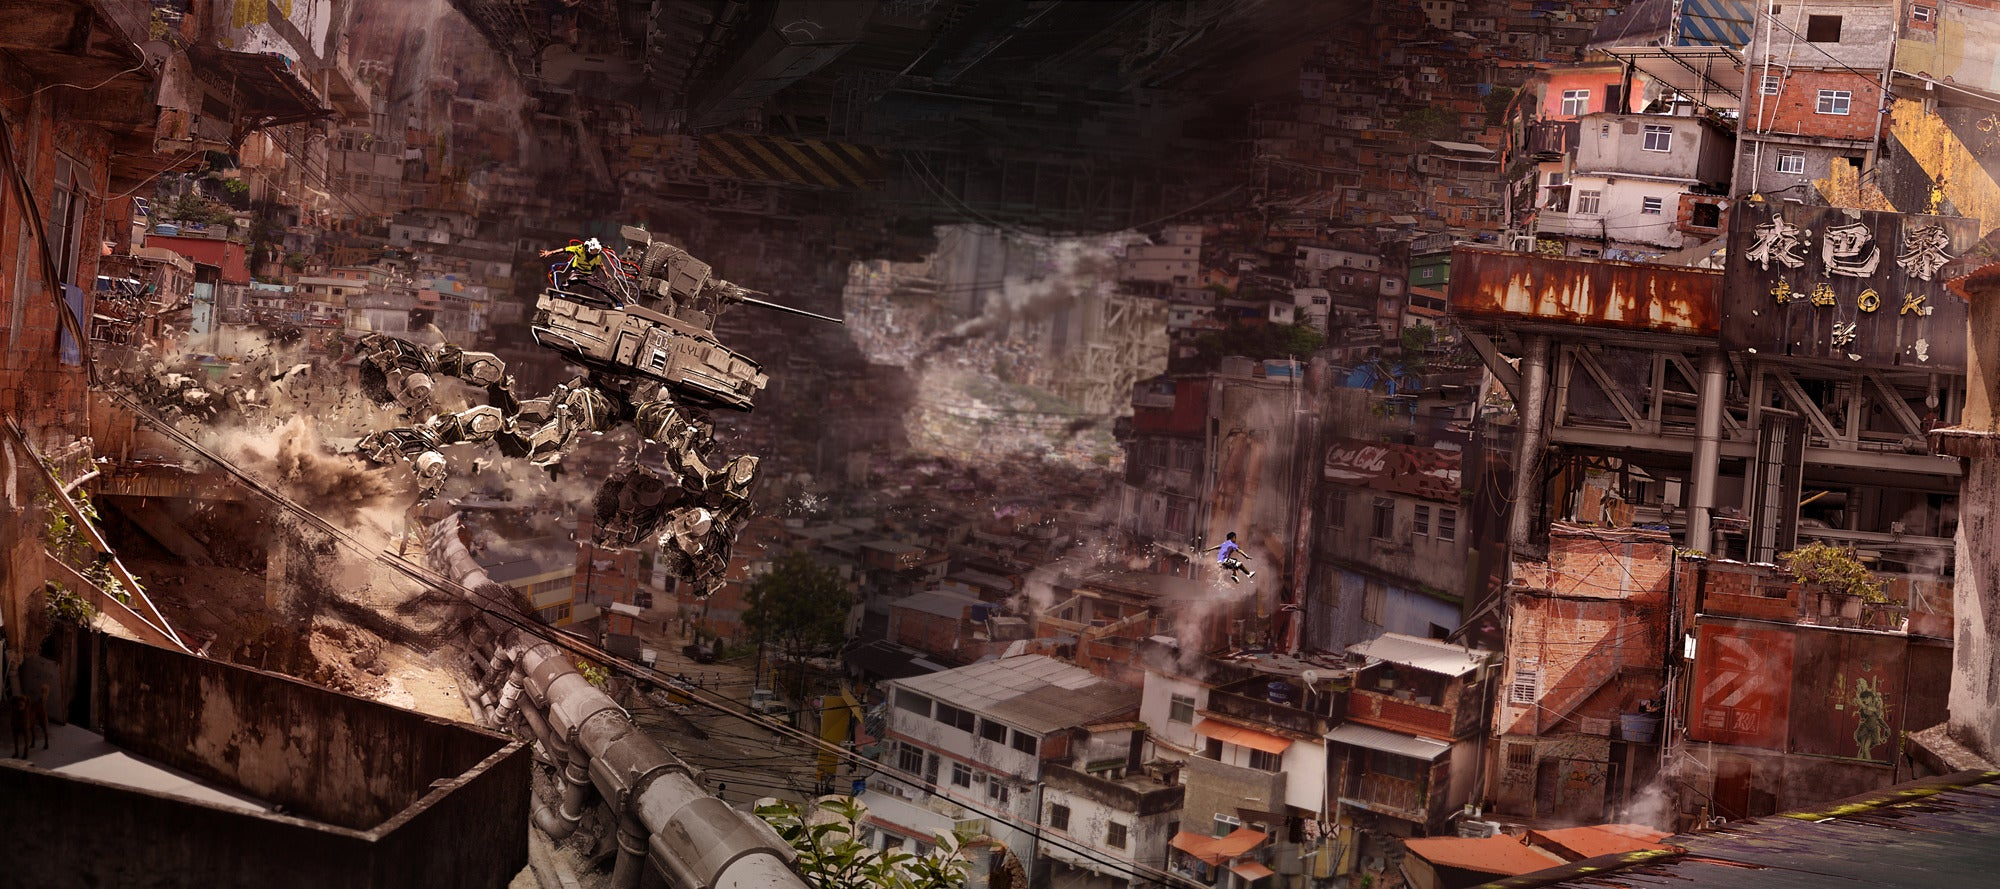 The Best Way To Start The Week Is With Sweet Sci-Fi Art